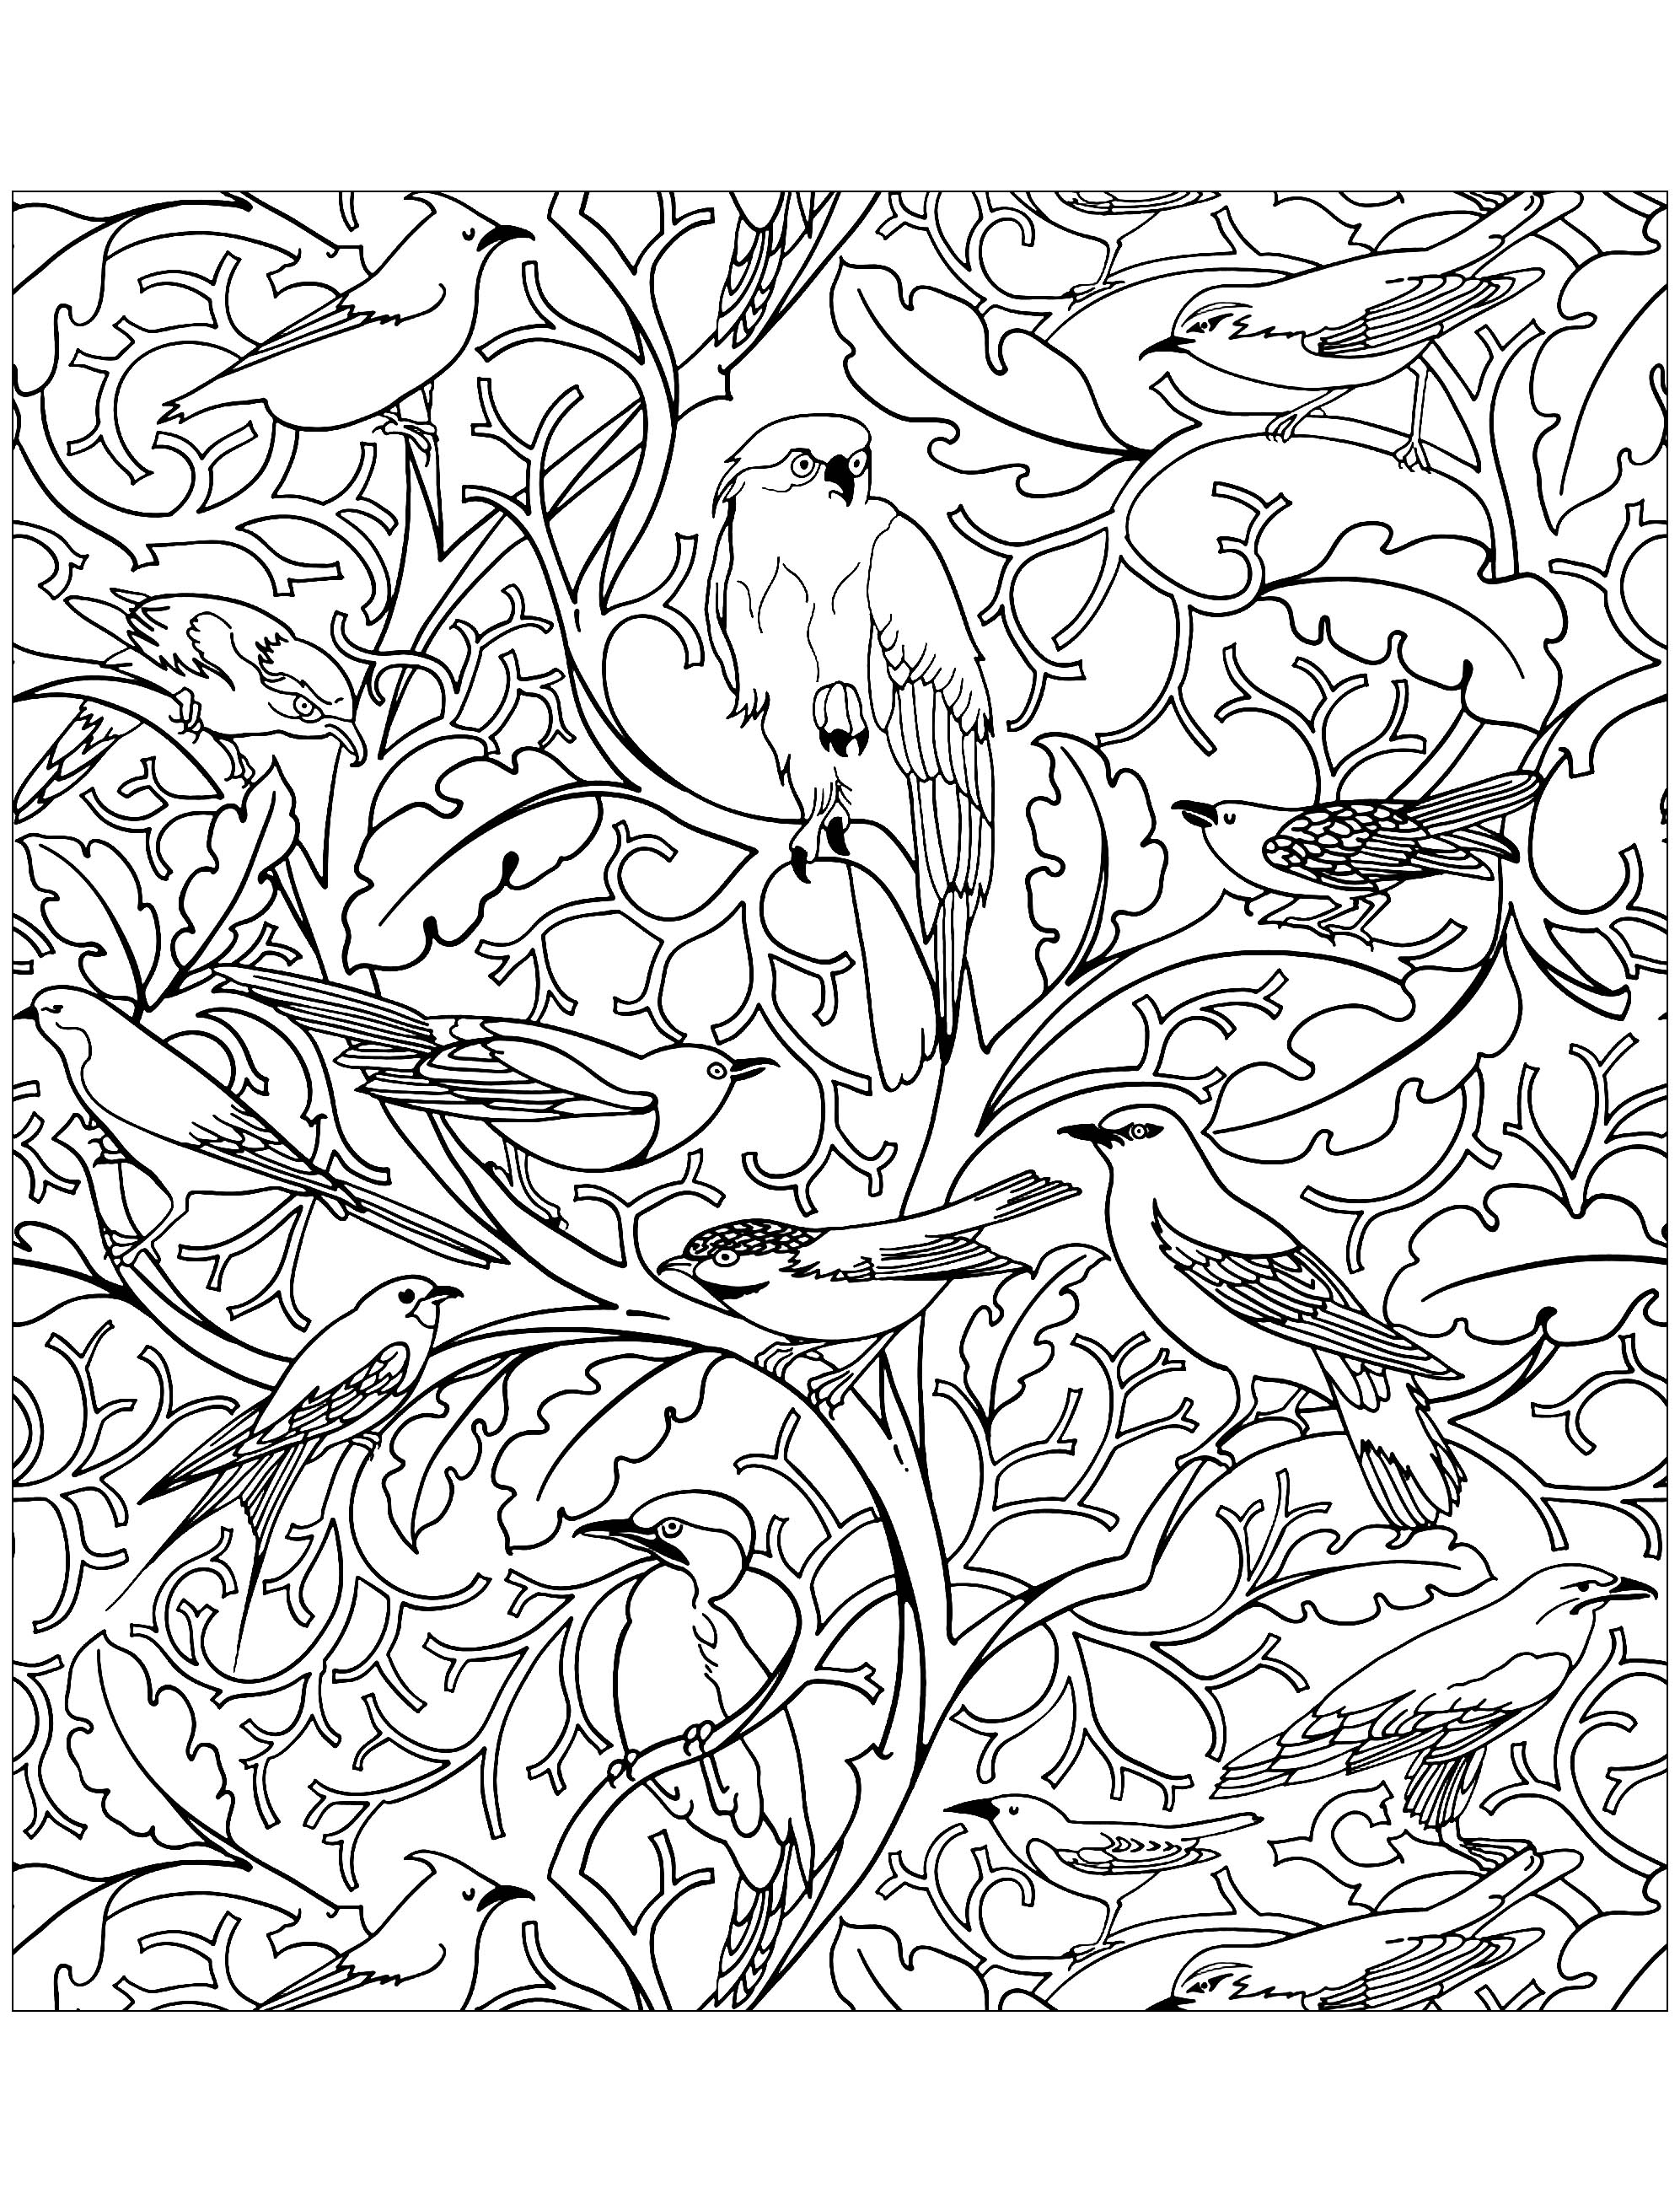 coloring scene beach coloring pages getcoloringpagescom coloring scene